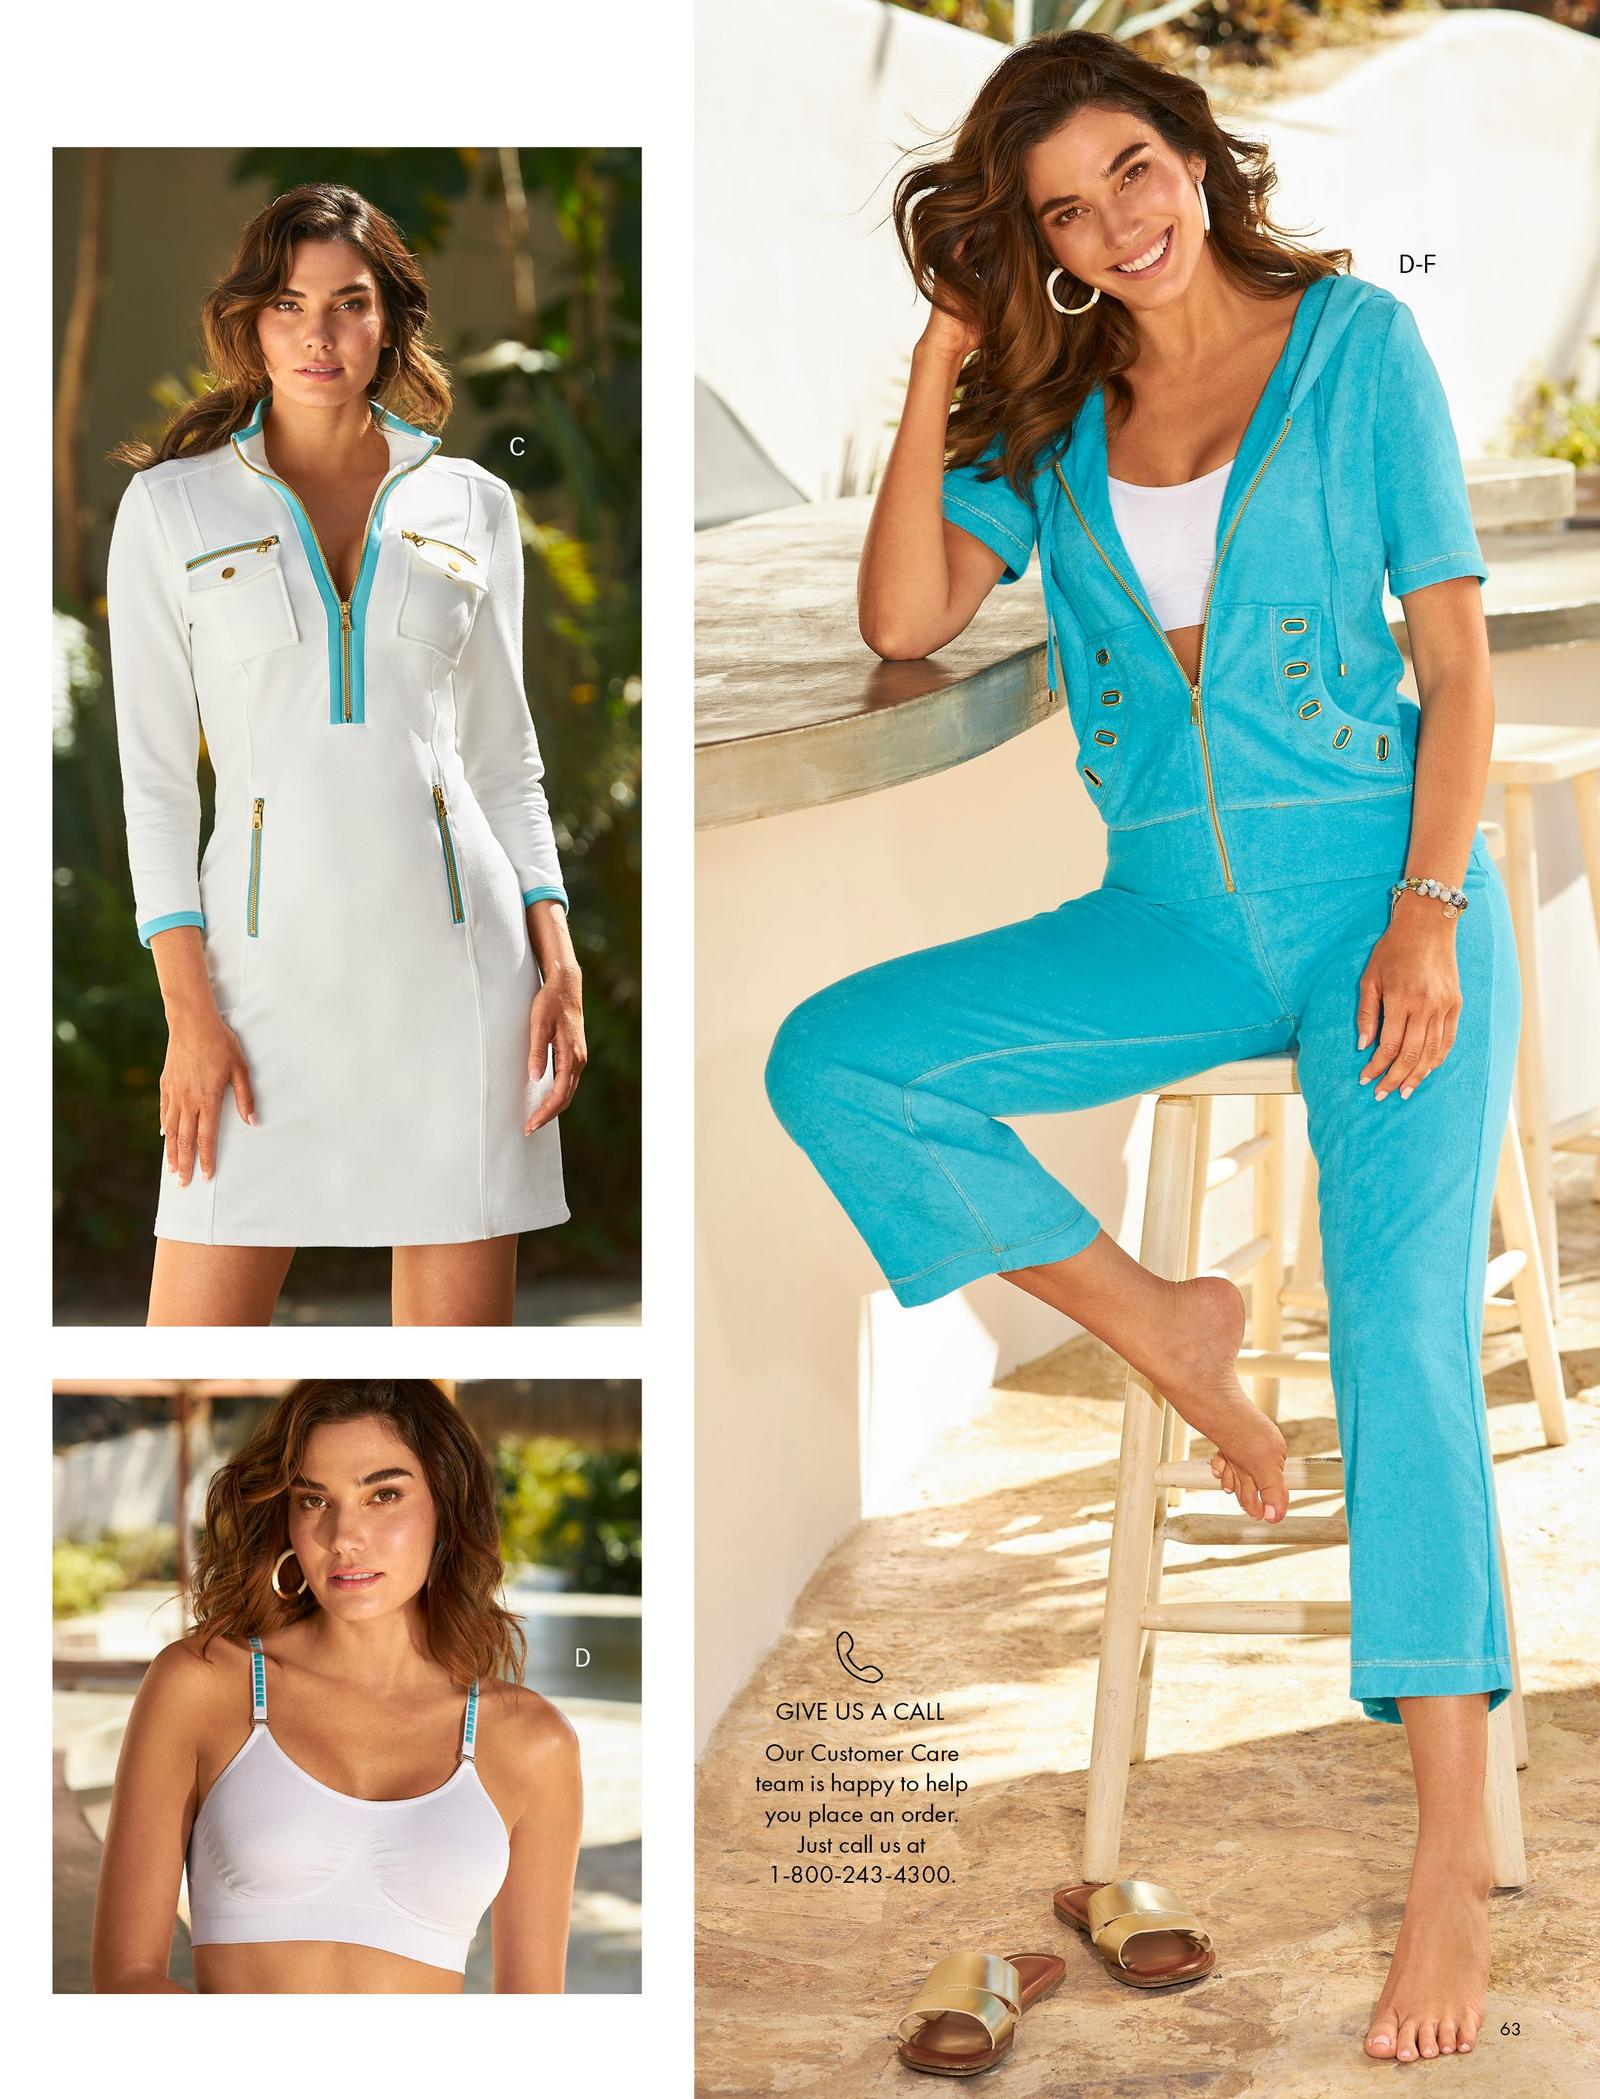 top left model wearing a white and blue long-sleeve chic zip sport dress. bottom left model wearing a white turquoise studded sports bra. right model wearing a terry cloth light blue short-sleeve grommet warm-up and silver hoop earrings with her gold double strap sandals on the floor.